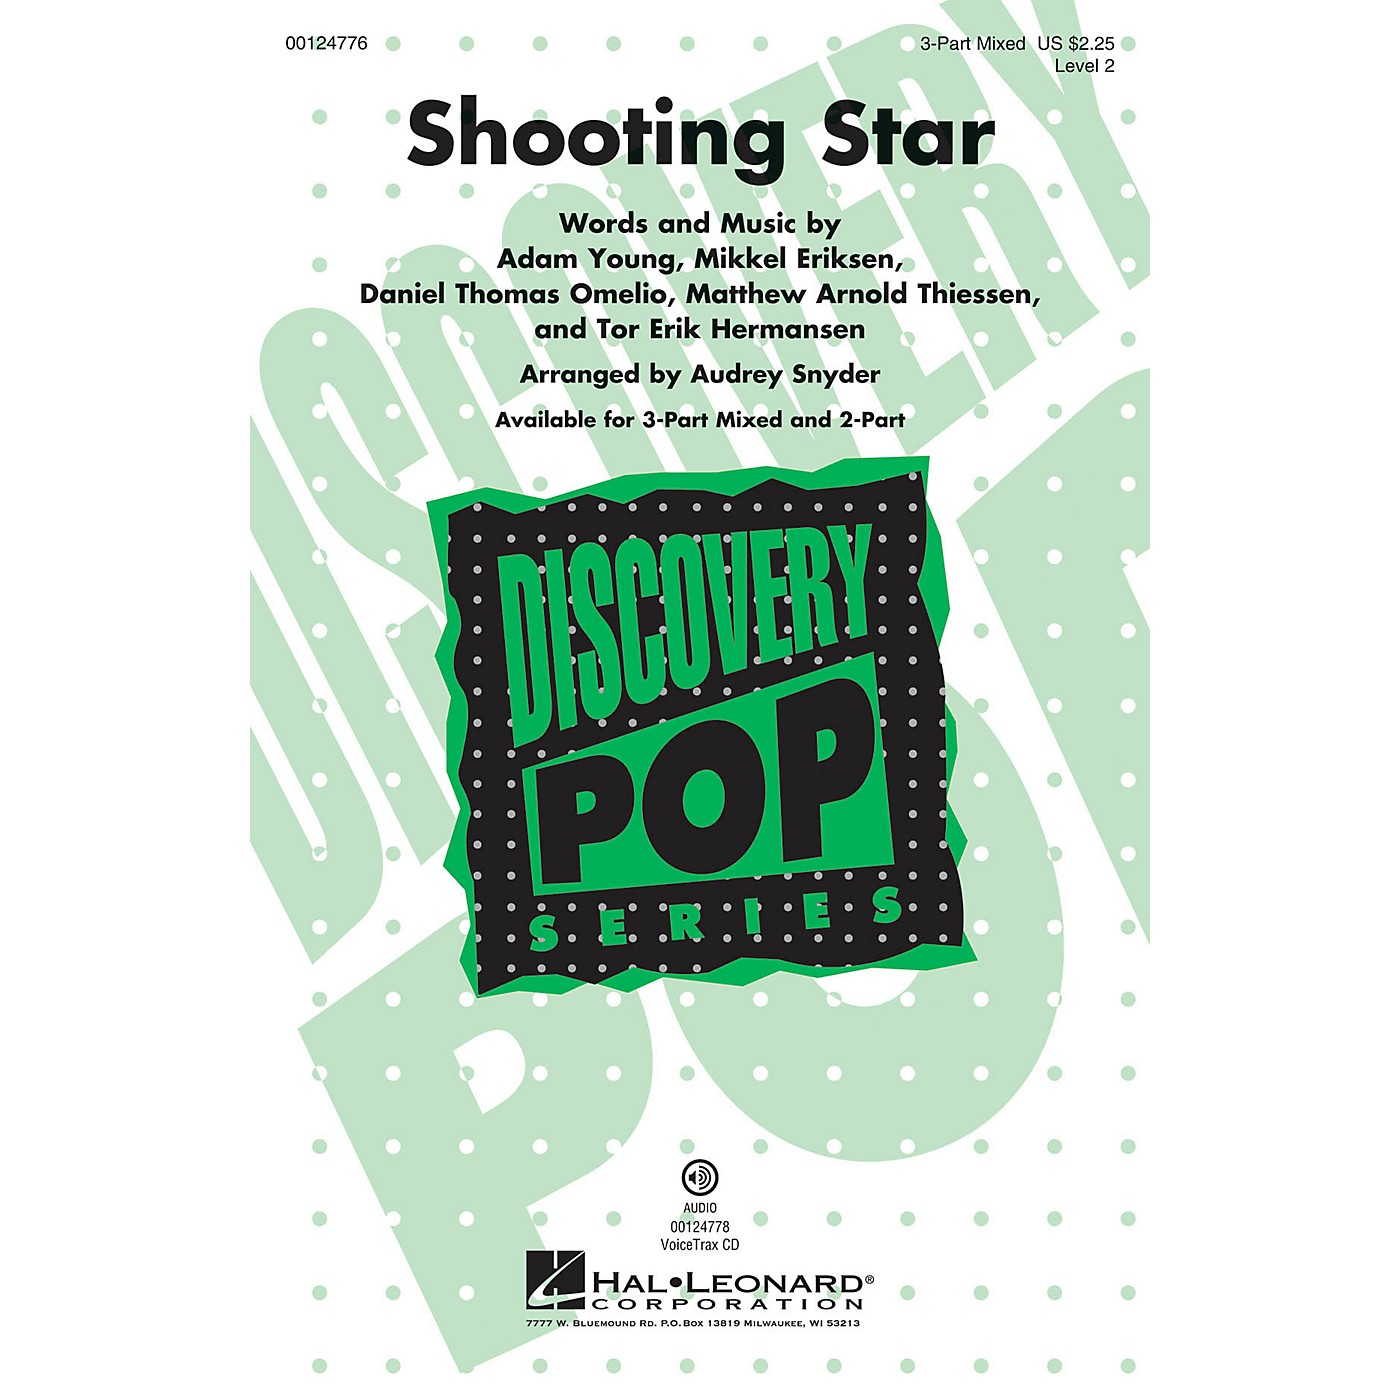 Hal Leonard Shooting Star (Discovery Level 2) 3-Part Mixed arranged by Audrey Snyder thumbnail